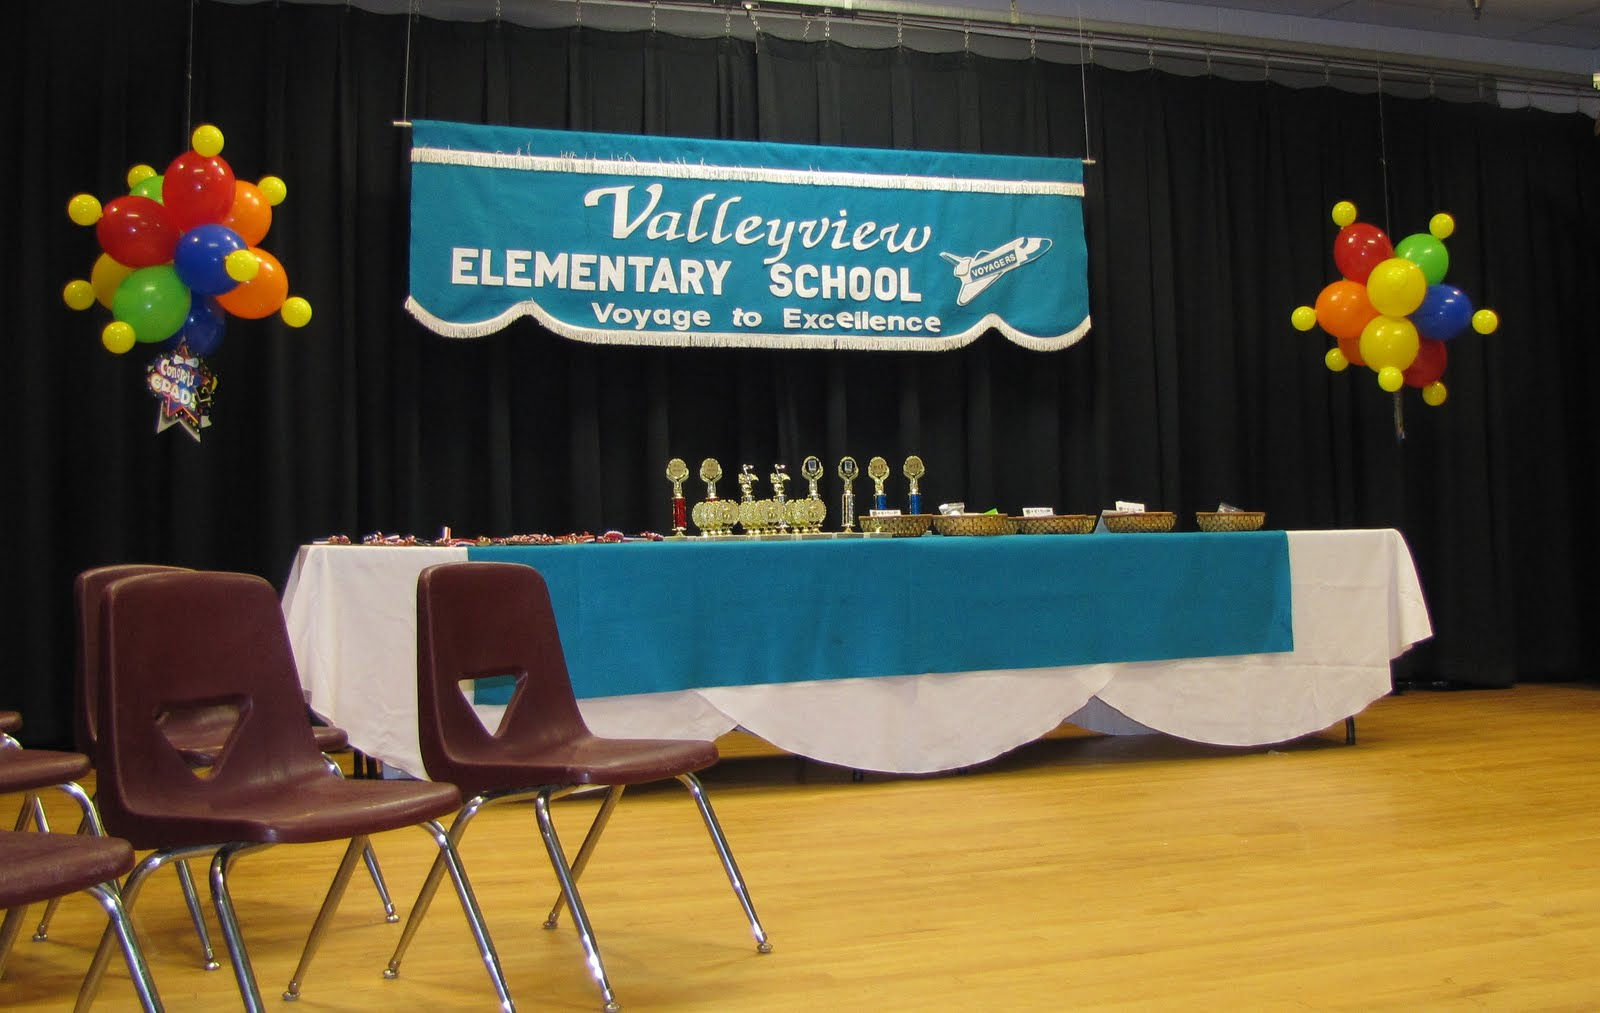 Party People Event Decorating Company Valleyview Elementary 5th